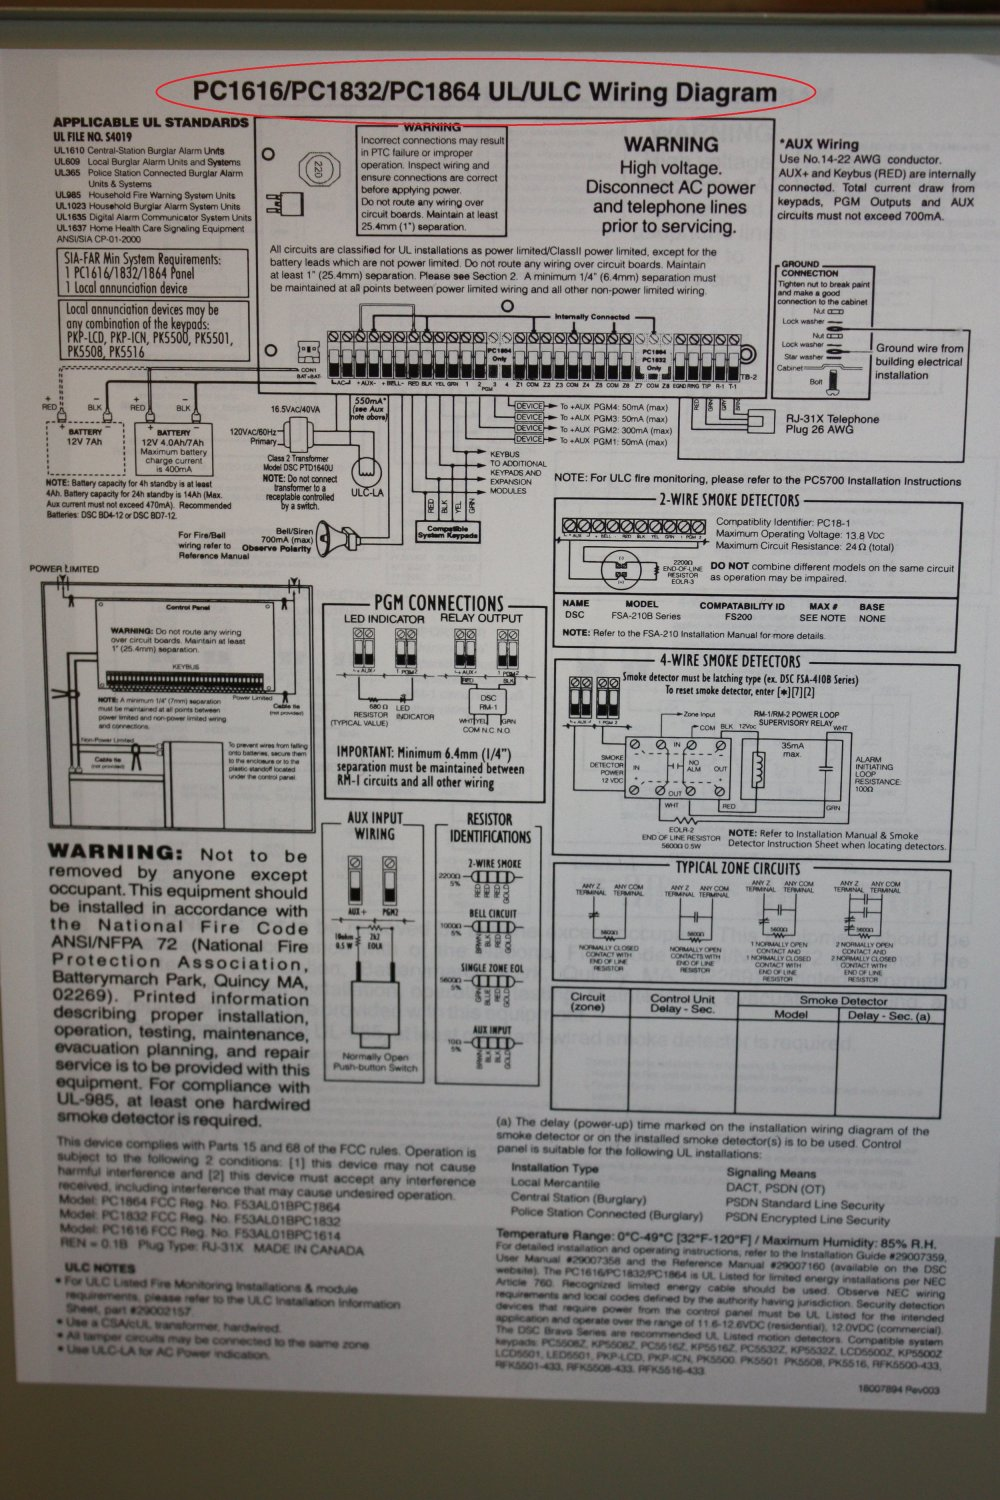 medium resolution of 5501 dsc fixed english nca alarms nashville wiring diagram nca schematic for the 5501 dsc fixed